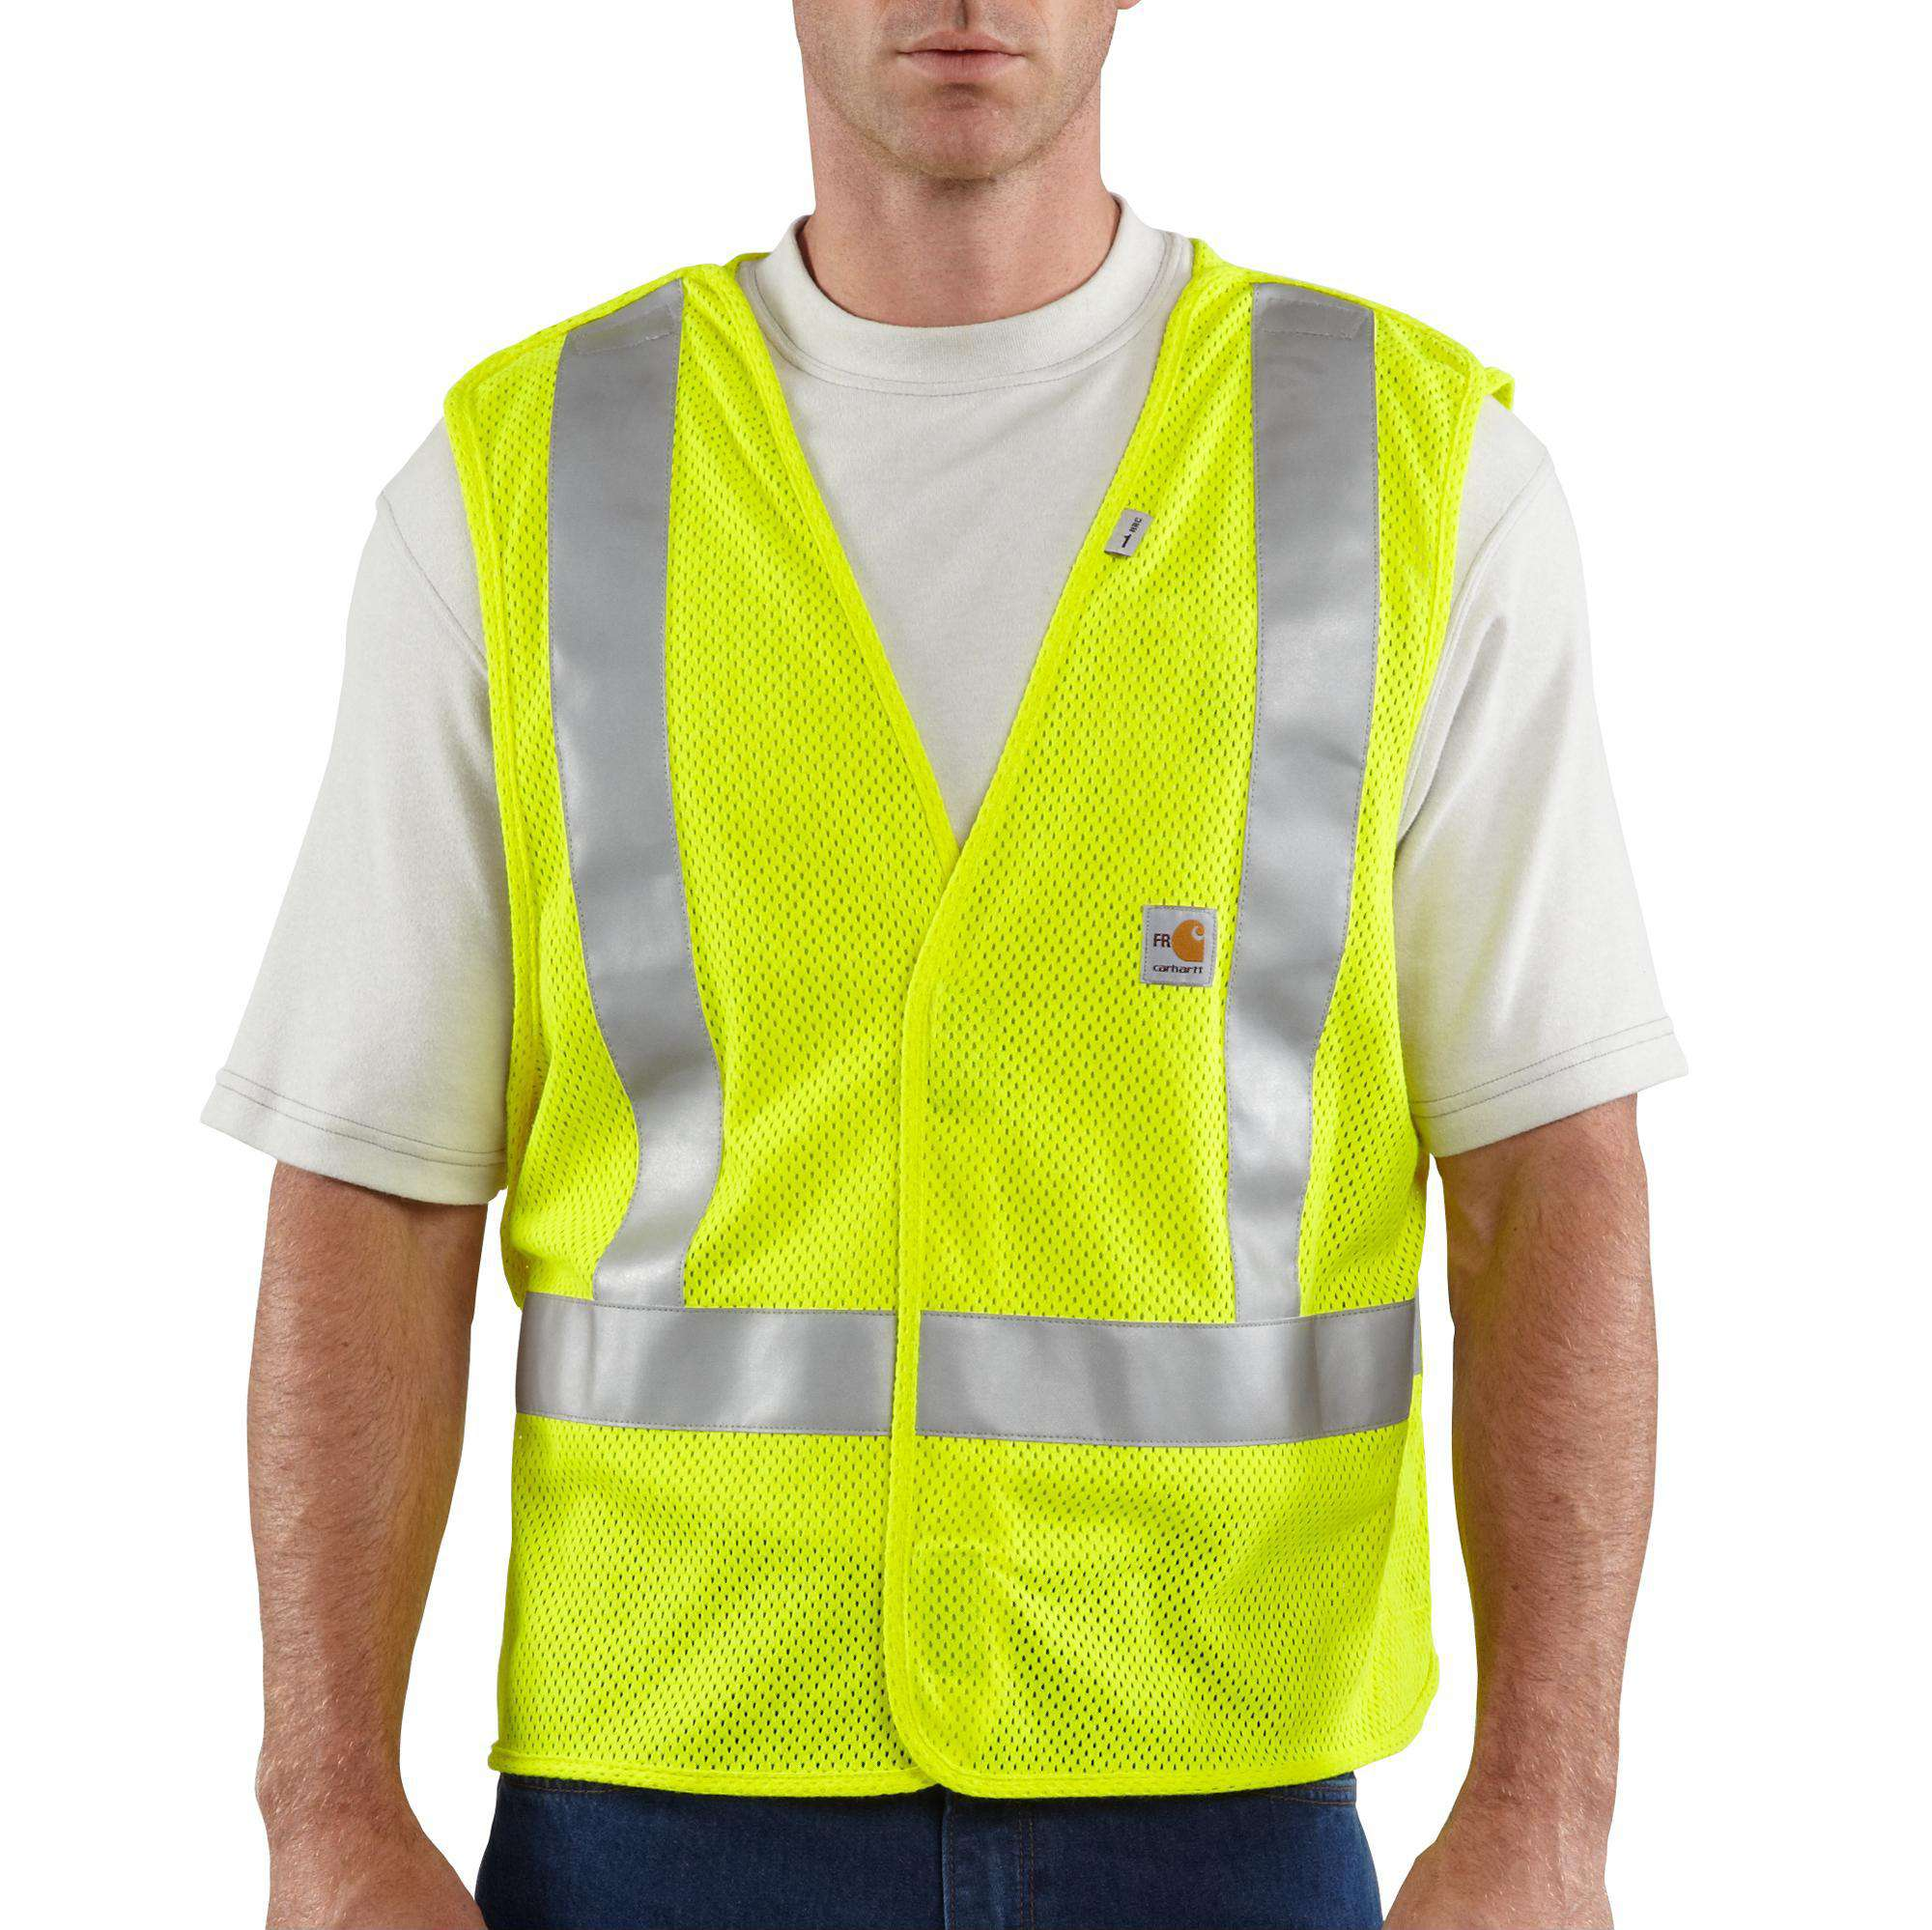 Carhartt Flame-resistant High-visibility 5-point Breakaway Vest